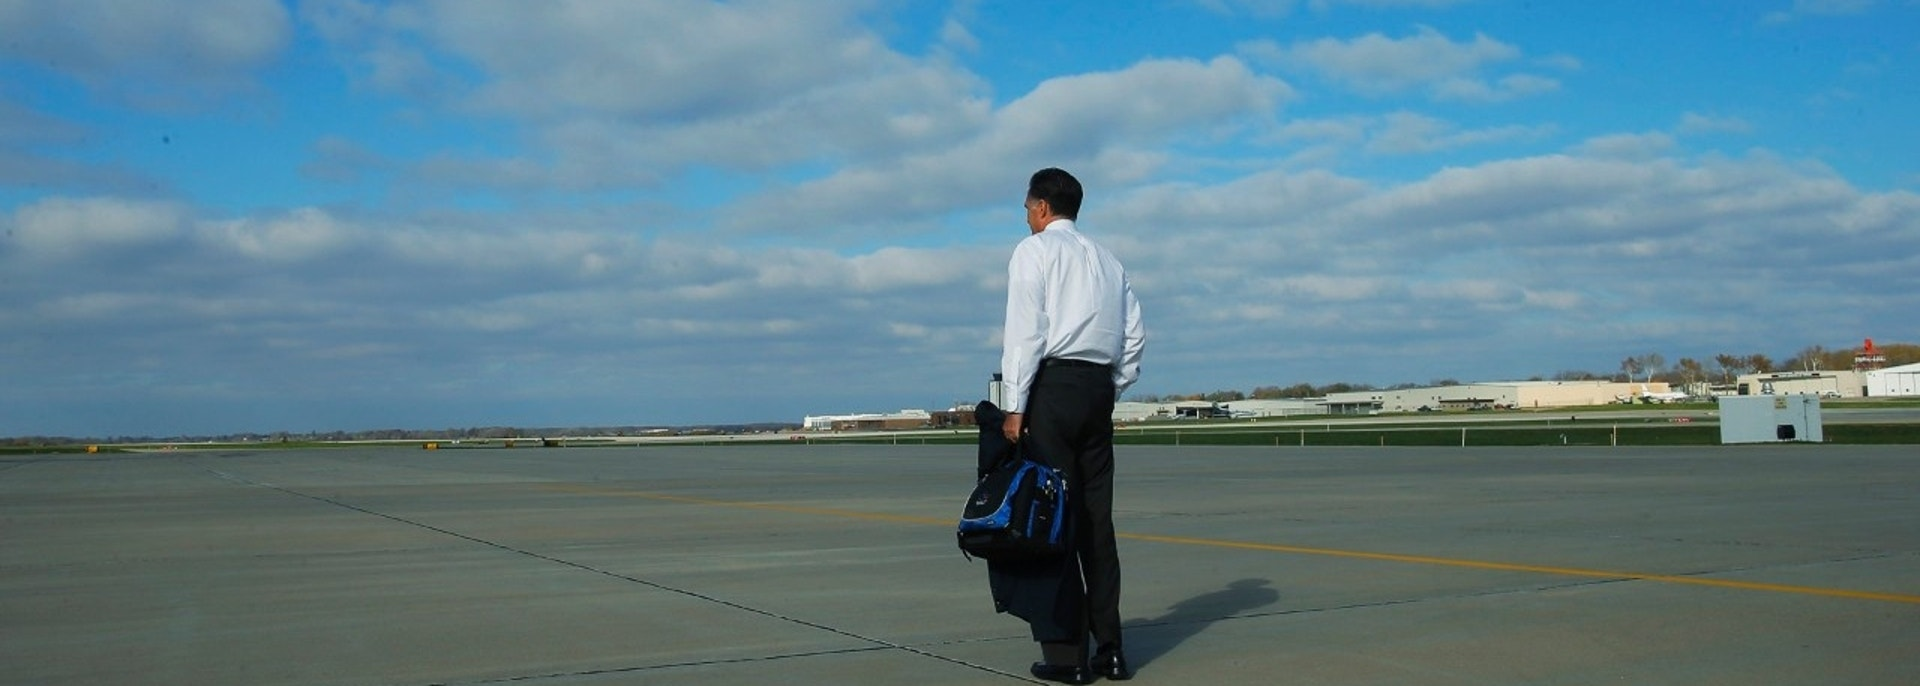 Republican presidential nominee Mitt Romney walks across the tarmac at the airport in Des Moines, Iowa October 26, 2012.   REUTERS/Brian Snyder    (UNITED STATES - Tags: POLITICS ELECTIONS) - TM3E8AR0TQO01